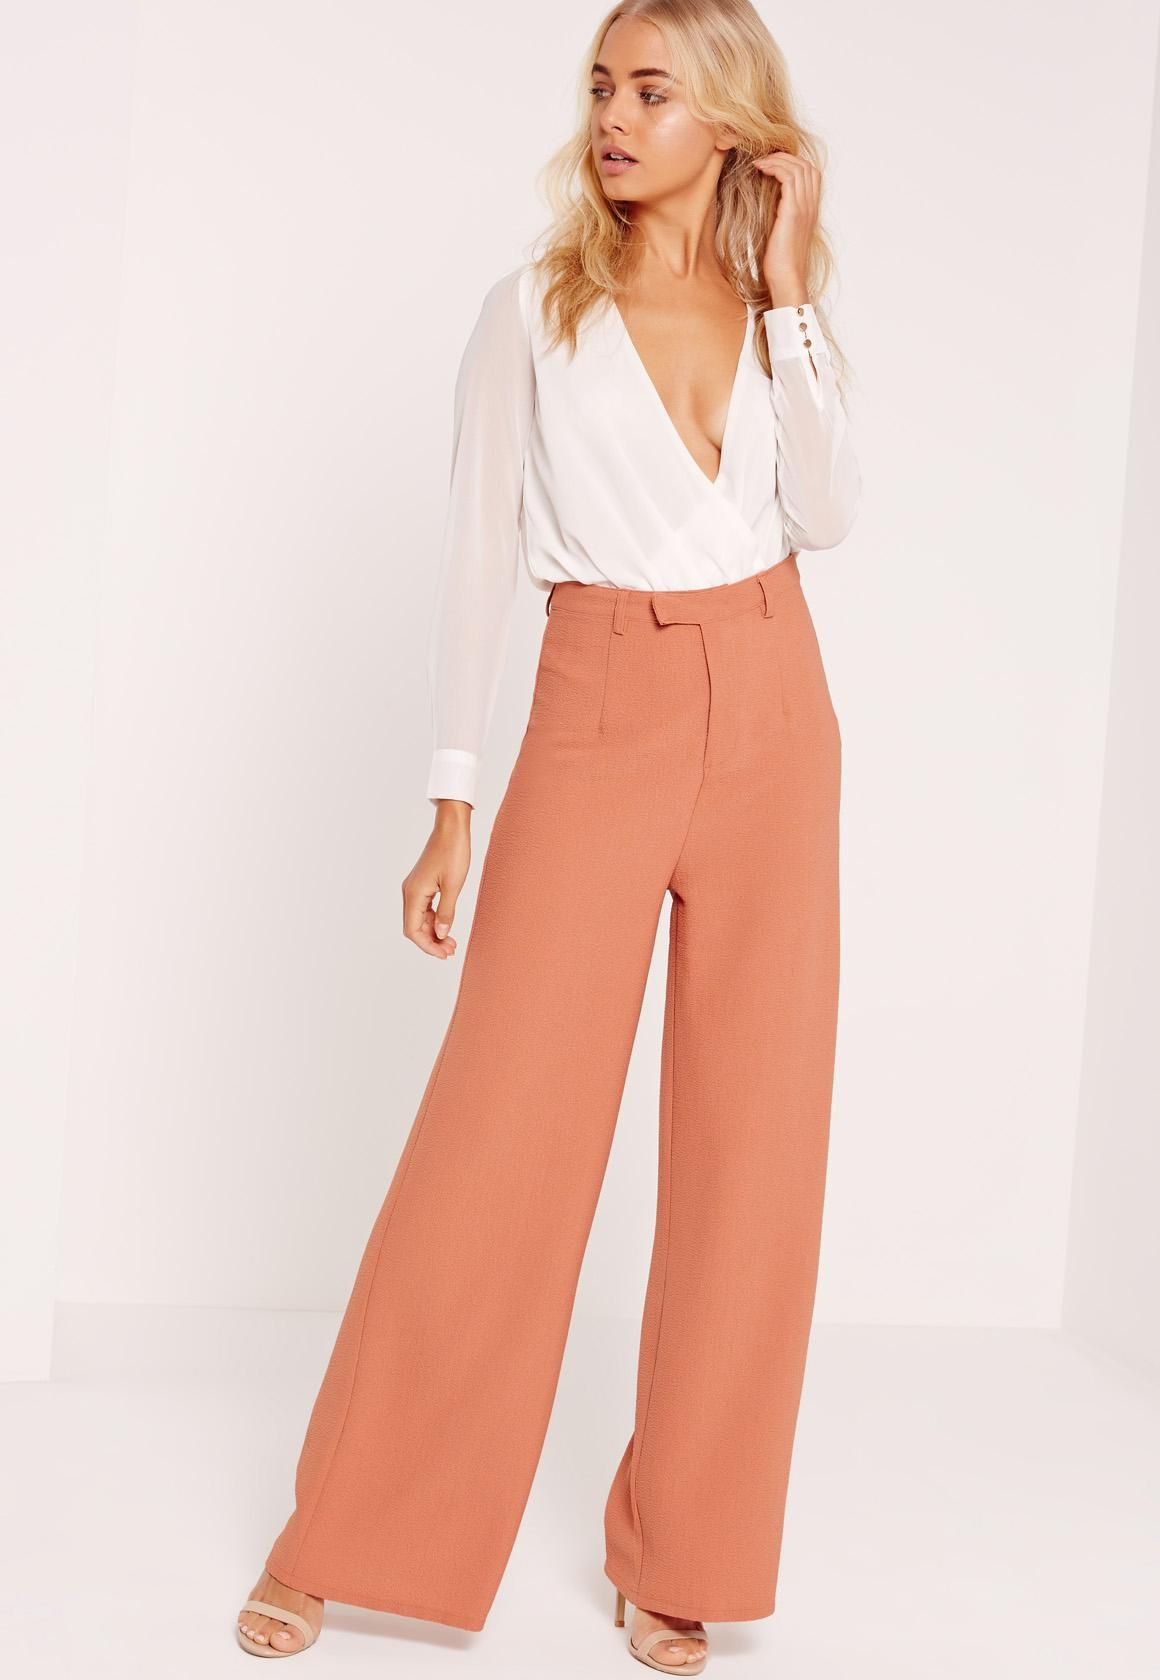 Missguided - Premium Crepe Wide Leg Trousers Nude   we heart it ... 23373aa2e51f